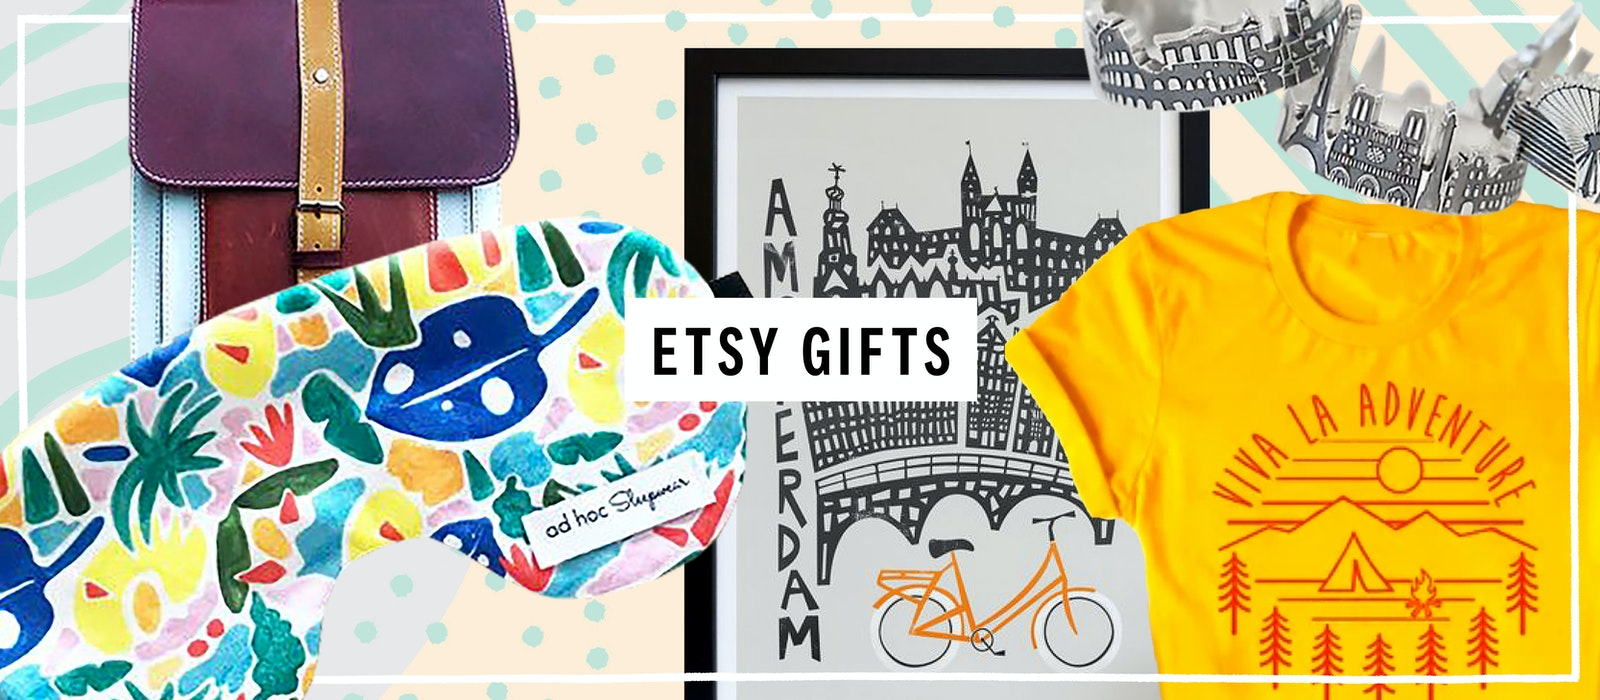 Original etsygifts hero.jpg?1538762958?ixlib=rails 0.3